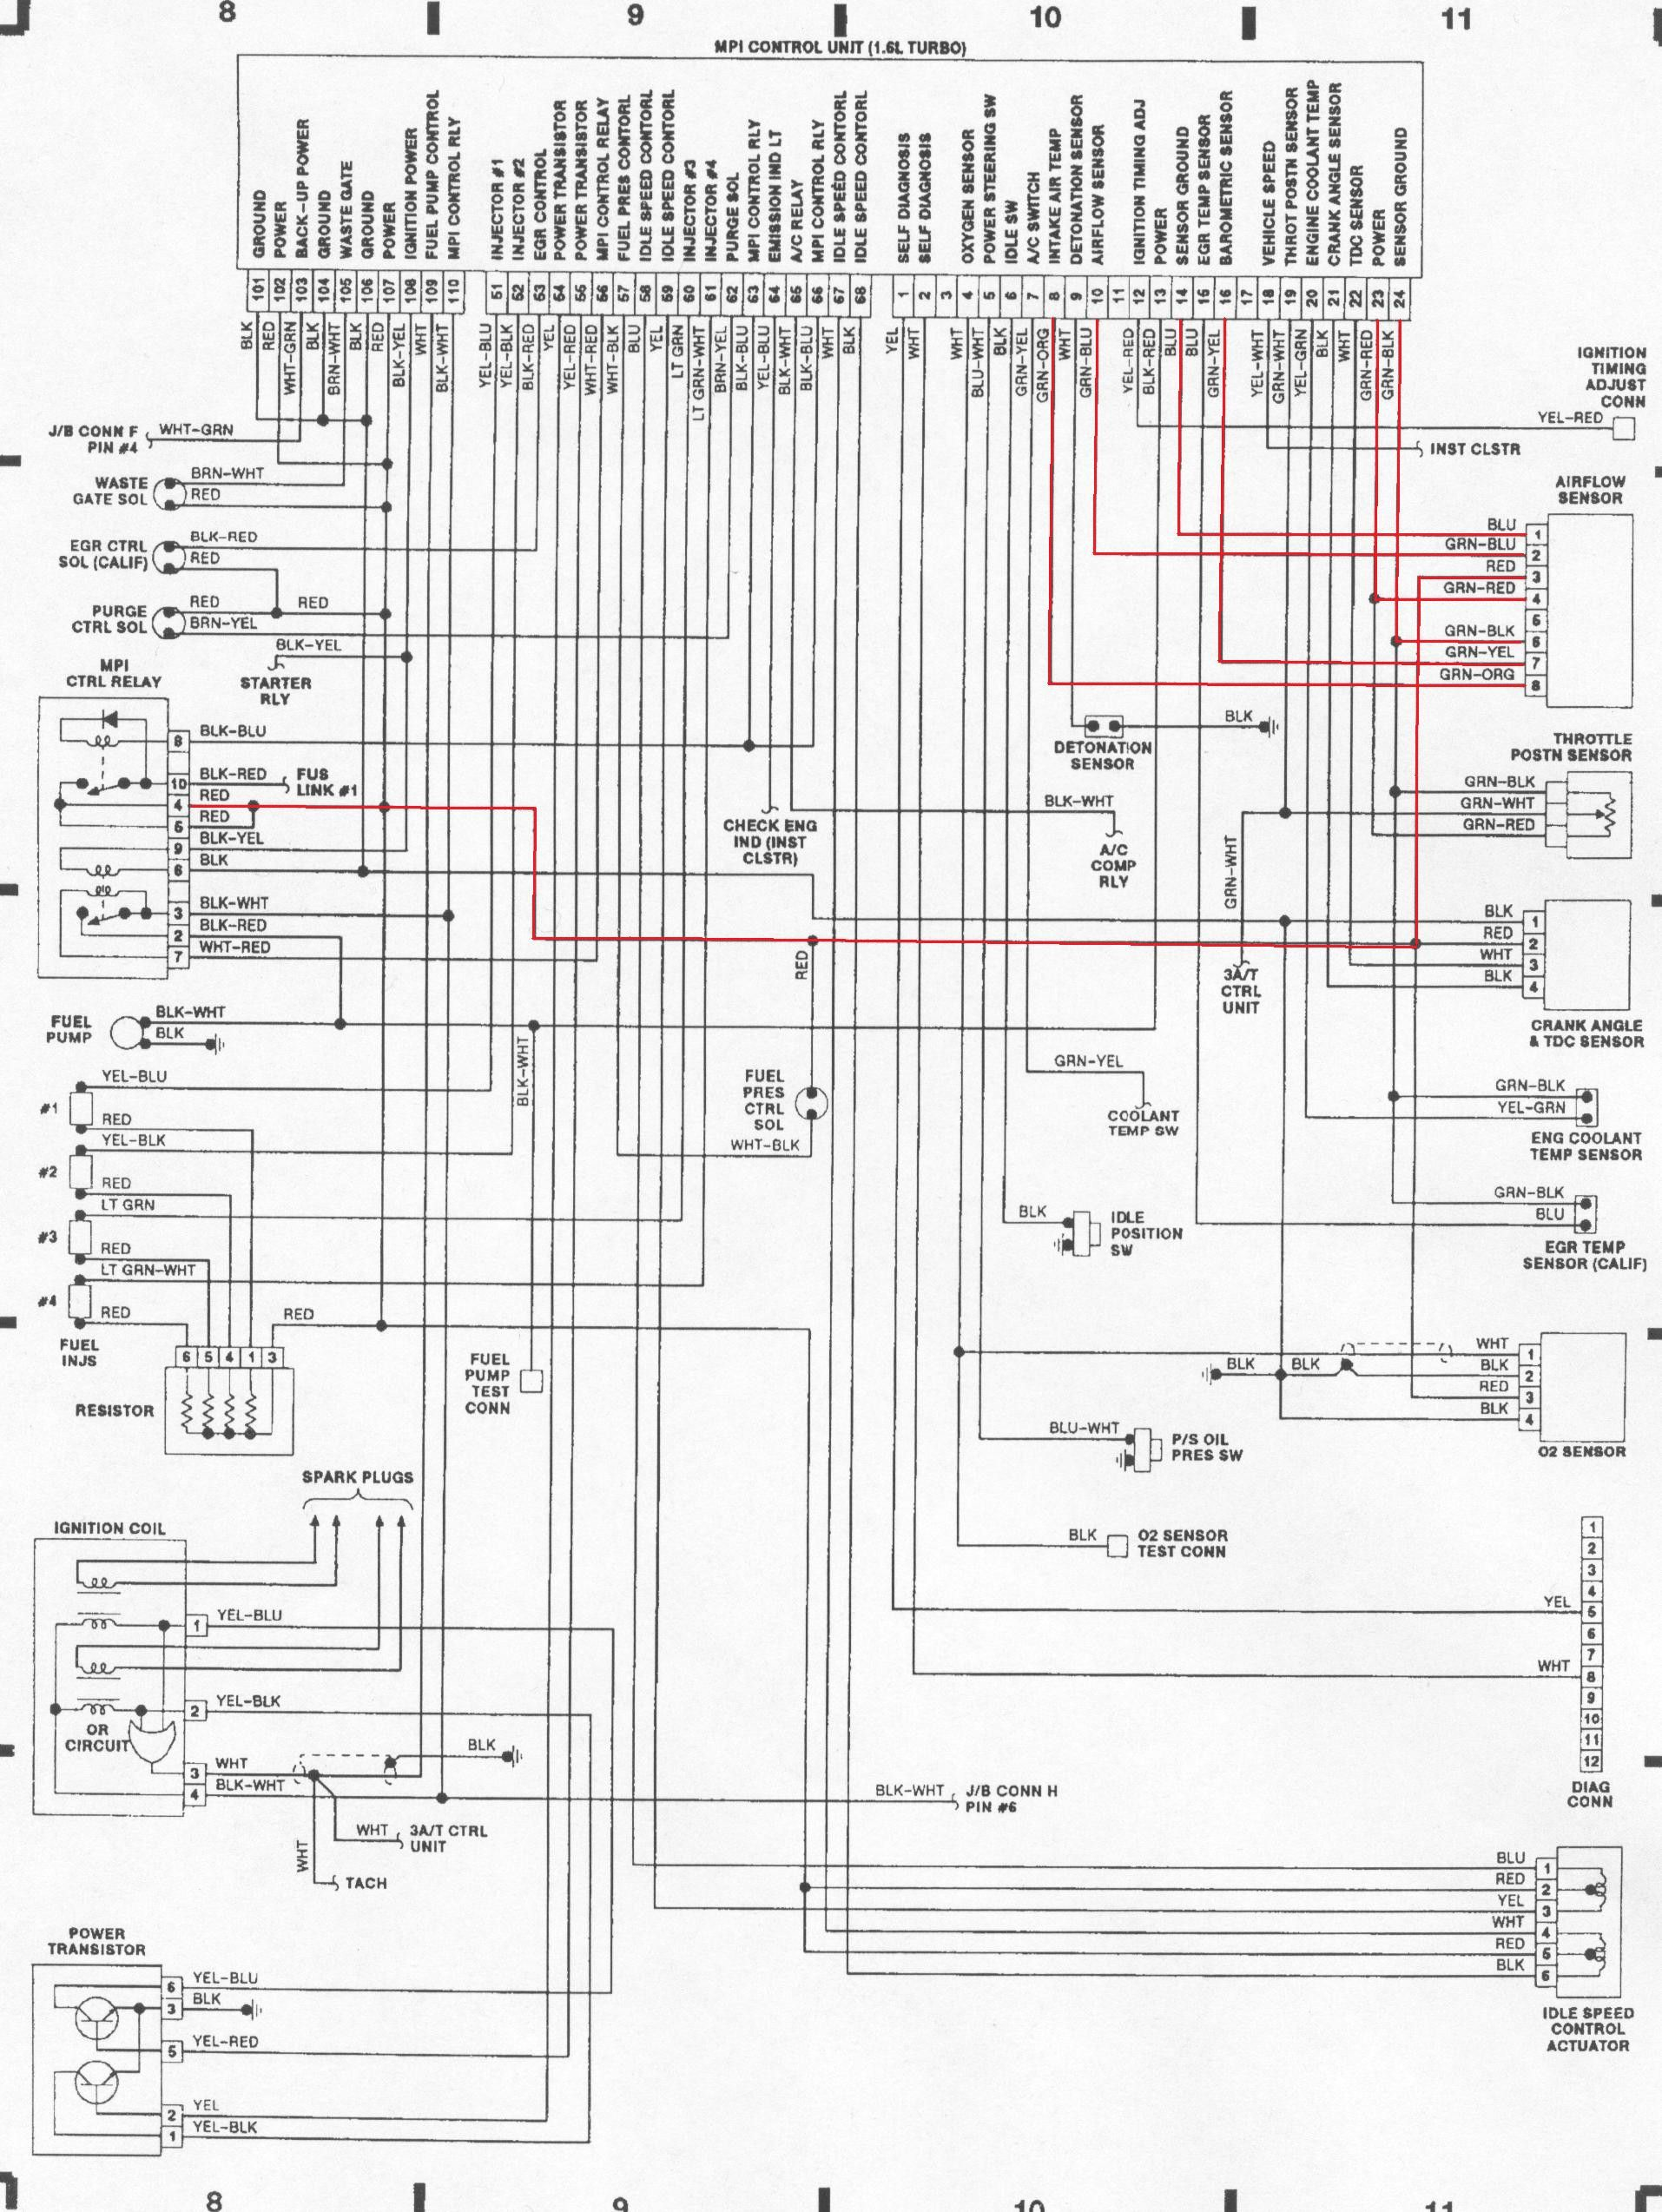 mitsubishi wiring diagram pdf wiring diagram advance 4g64 turbo auto wiring  diagrams for mitsubishi wiring diagram